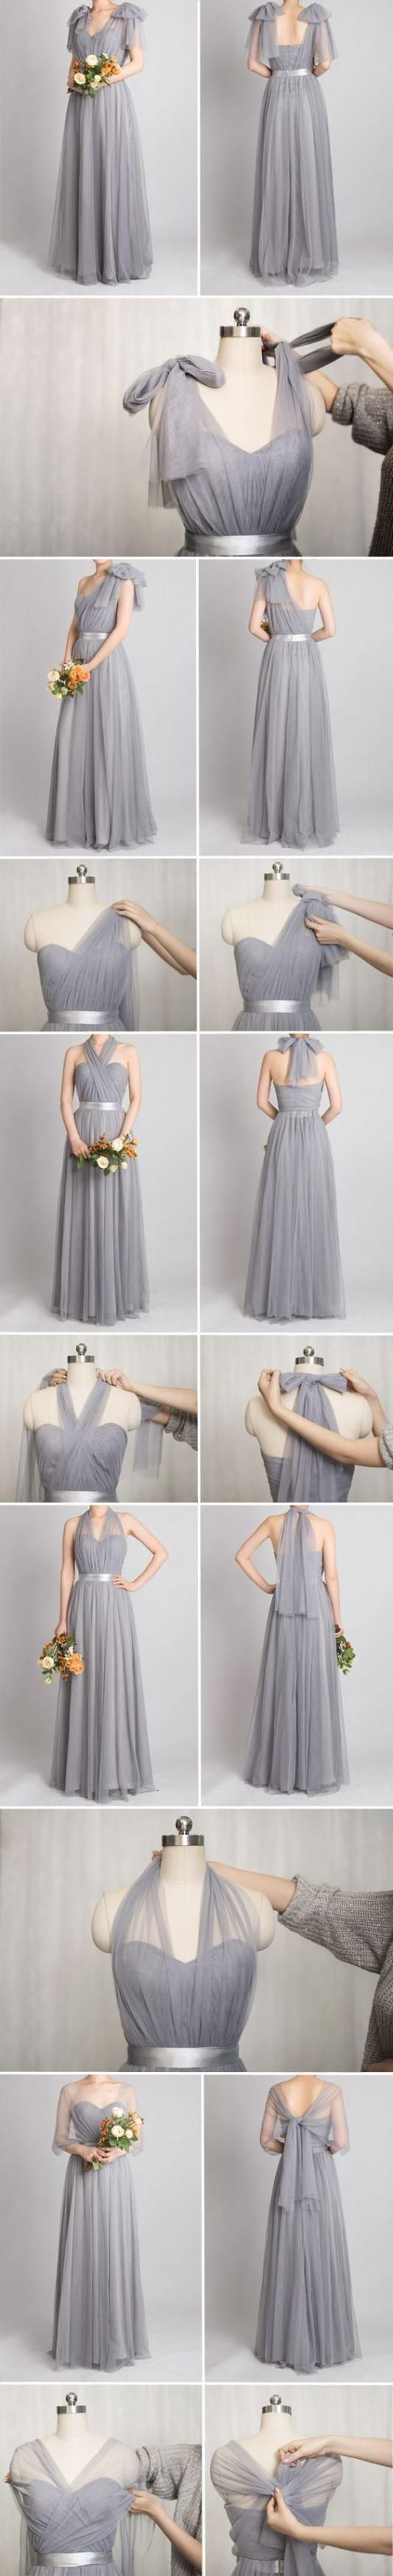 Tulle Convertible Bridesmaid Dress, Multi-wear Bridesmaid Dress,Tulle Wedding Guest Dress,Silver Tulle Party Dress